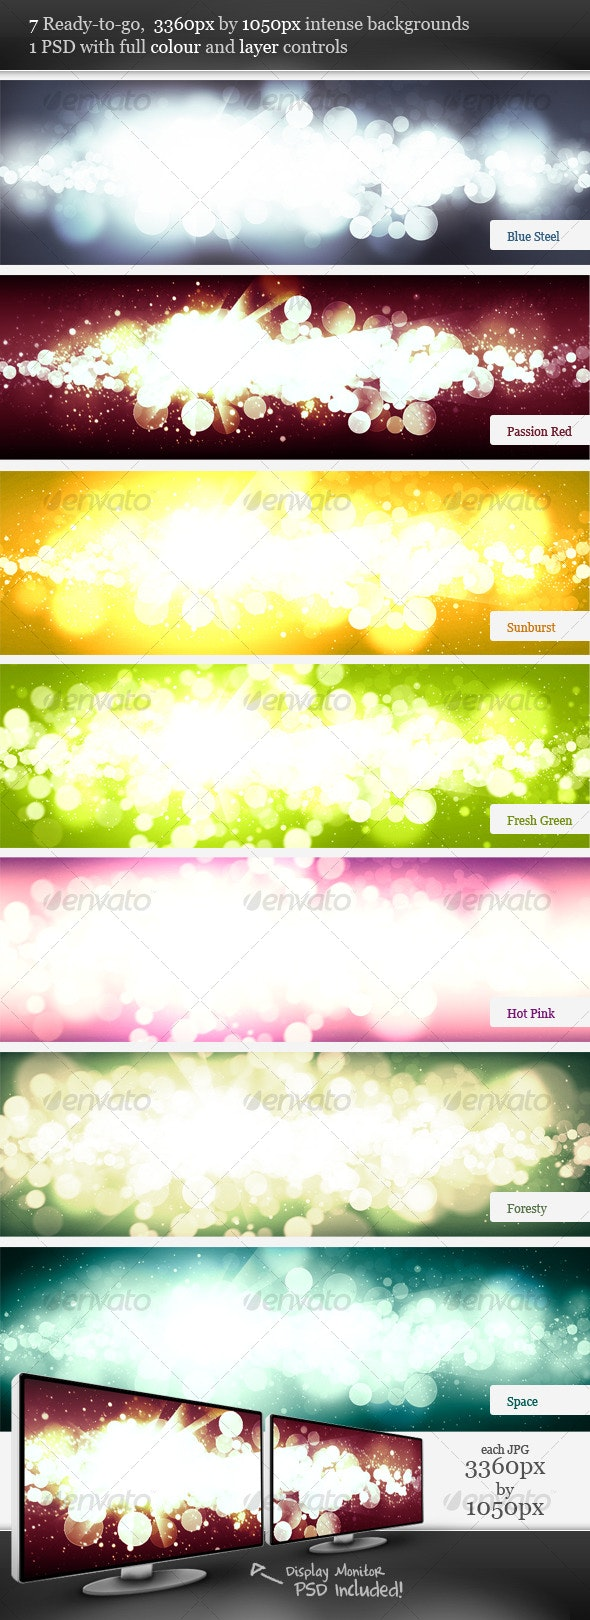 Intense Flare Burst Backgrounds - Abstract Backgrounds